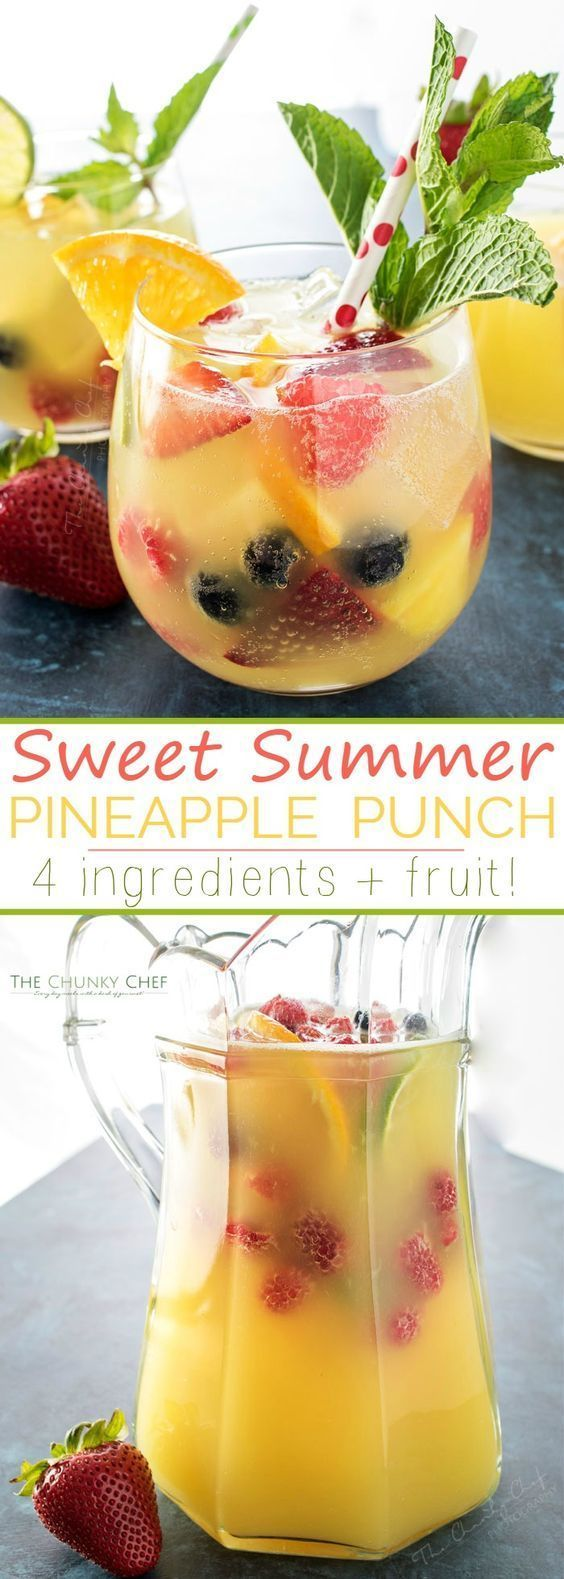 Summer Pineapple Punch | This sweet and easy to make pineapple punch will be the hit of any party! Just 4 simple ingredients plus fresh fruit and pretty garnishes! | http://thechunkychef.com